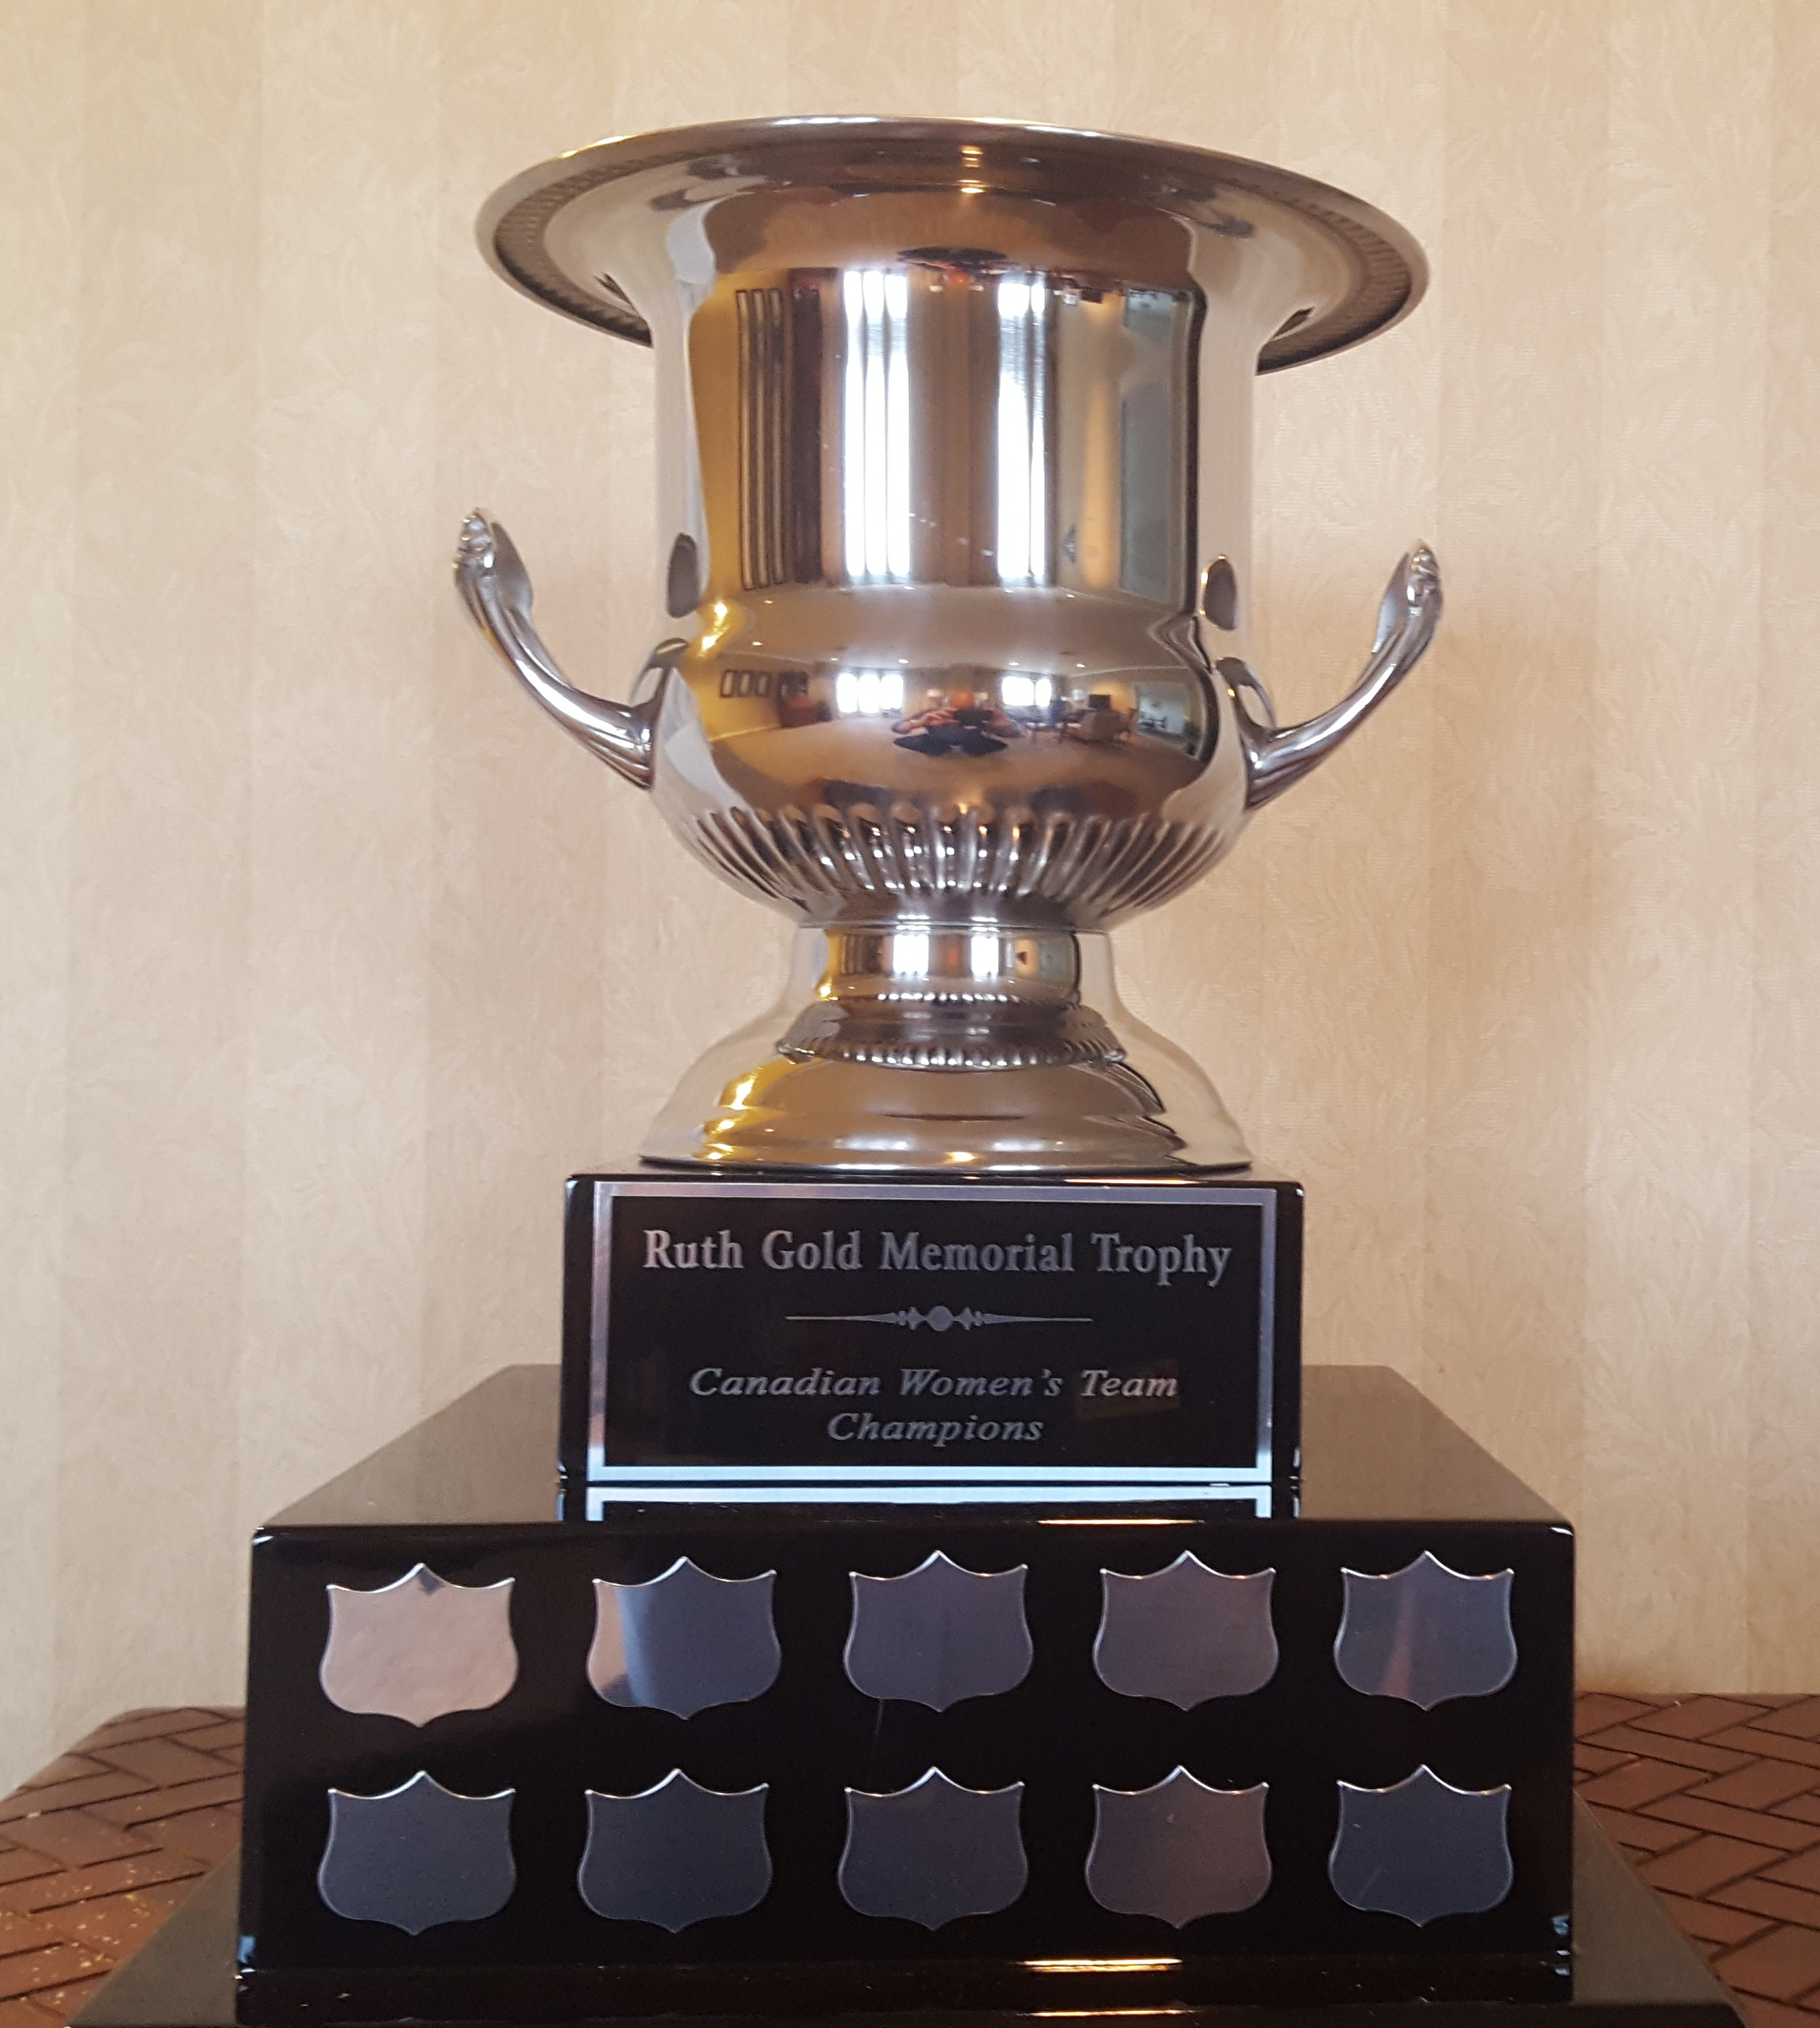 Ruth Gold Memorial Trophy